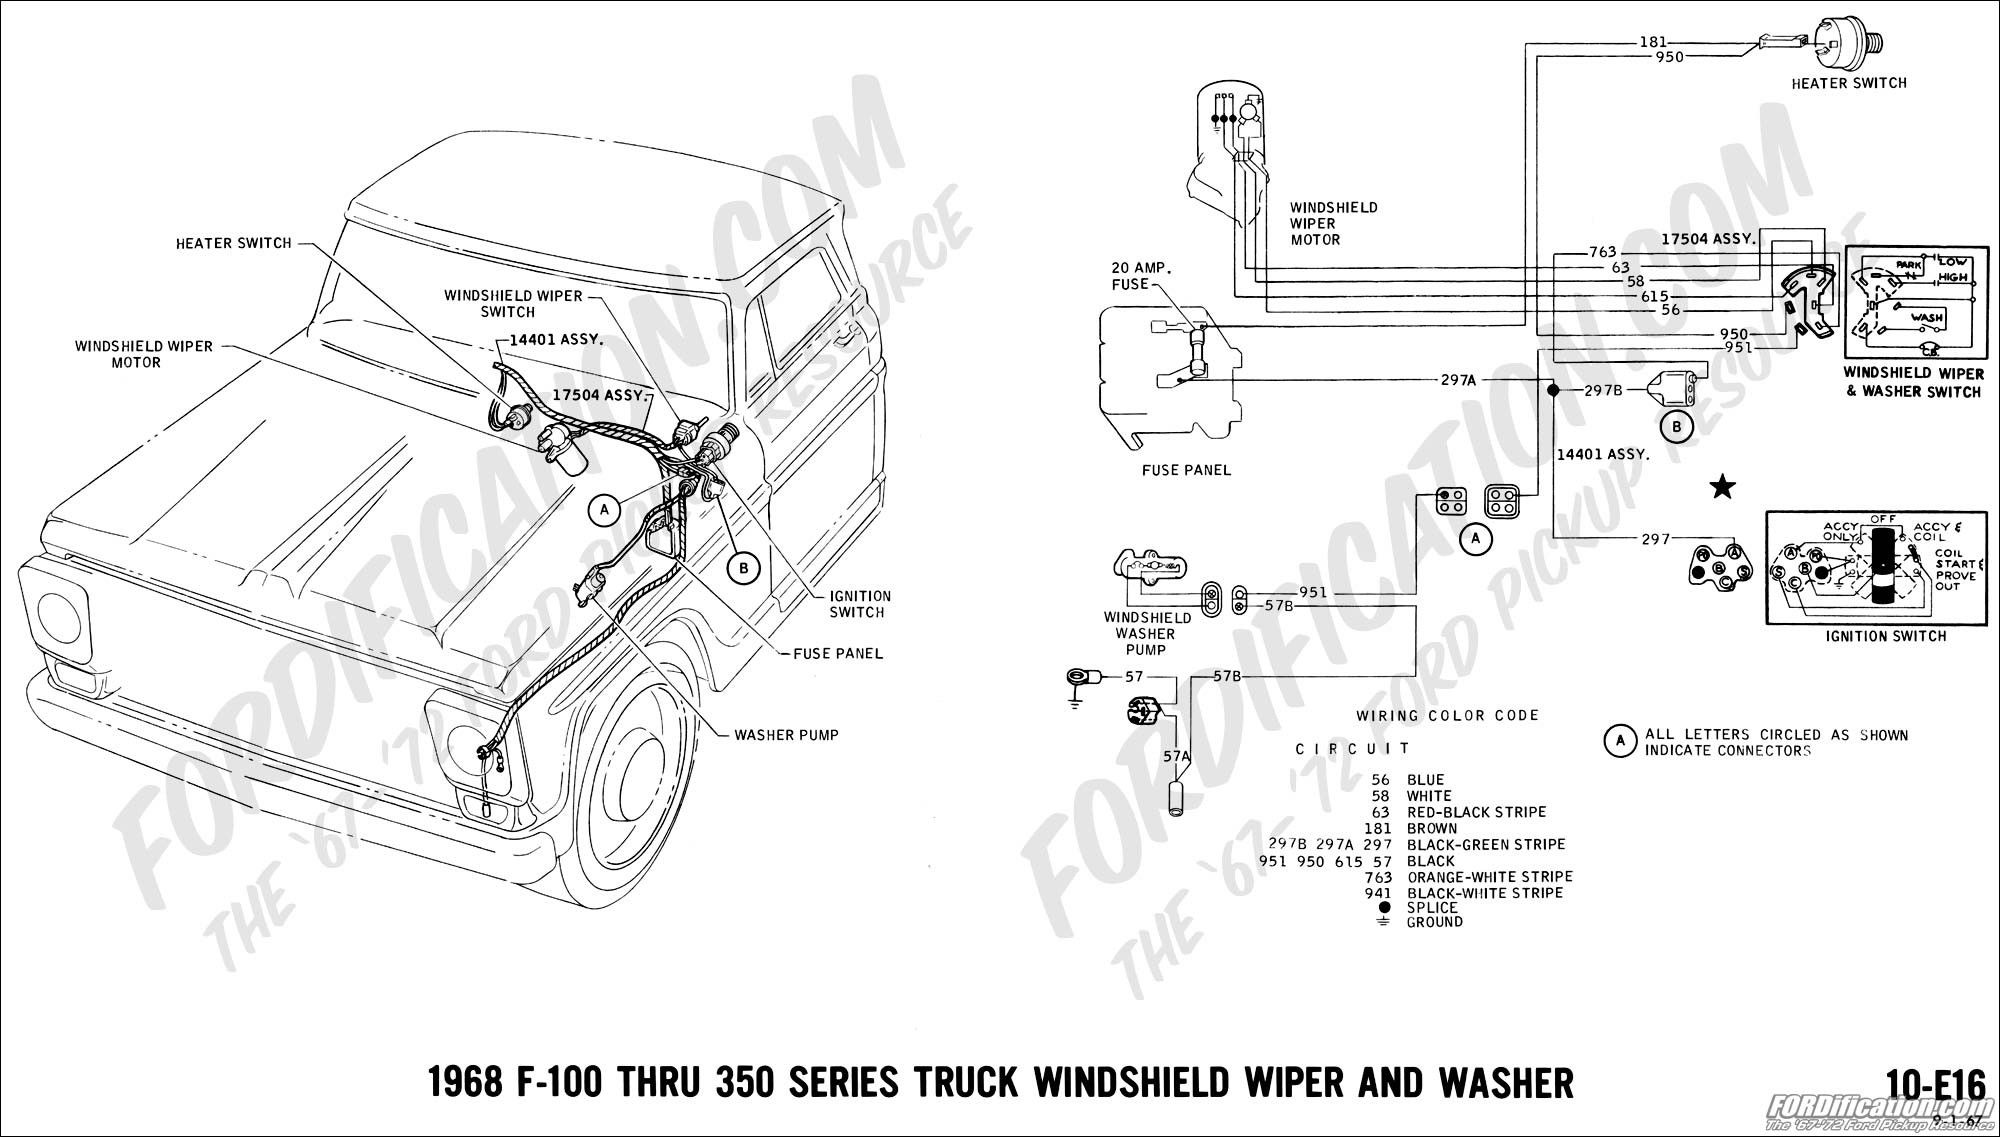 Lovely Alternator Wiring Diagram Ford Ranger  Diagrams  Digramssample  Diagramimages